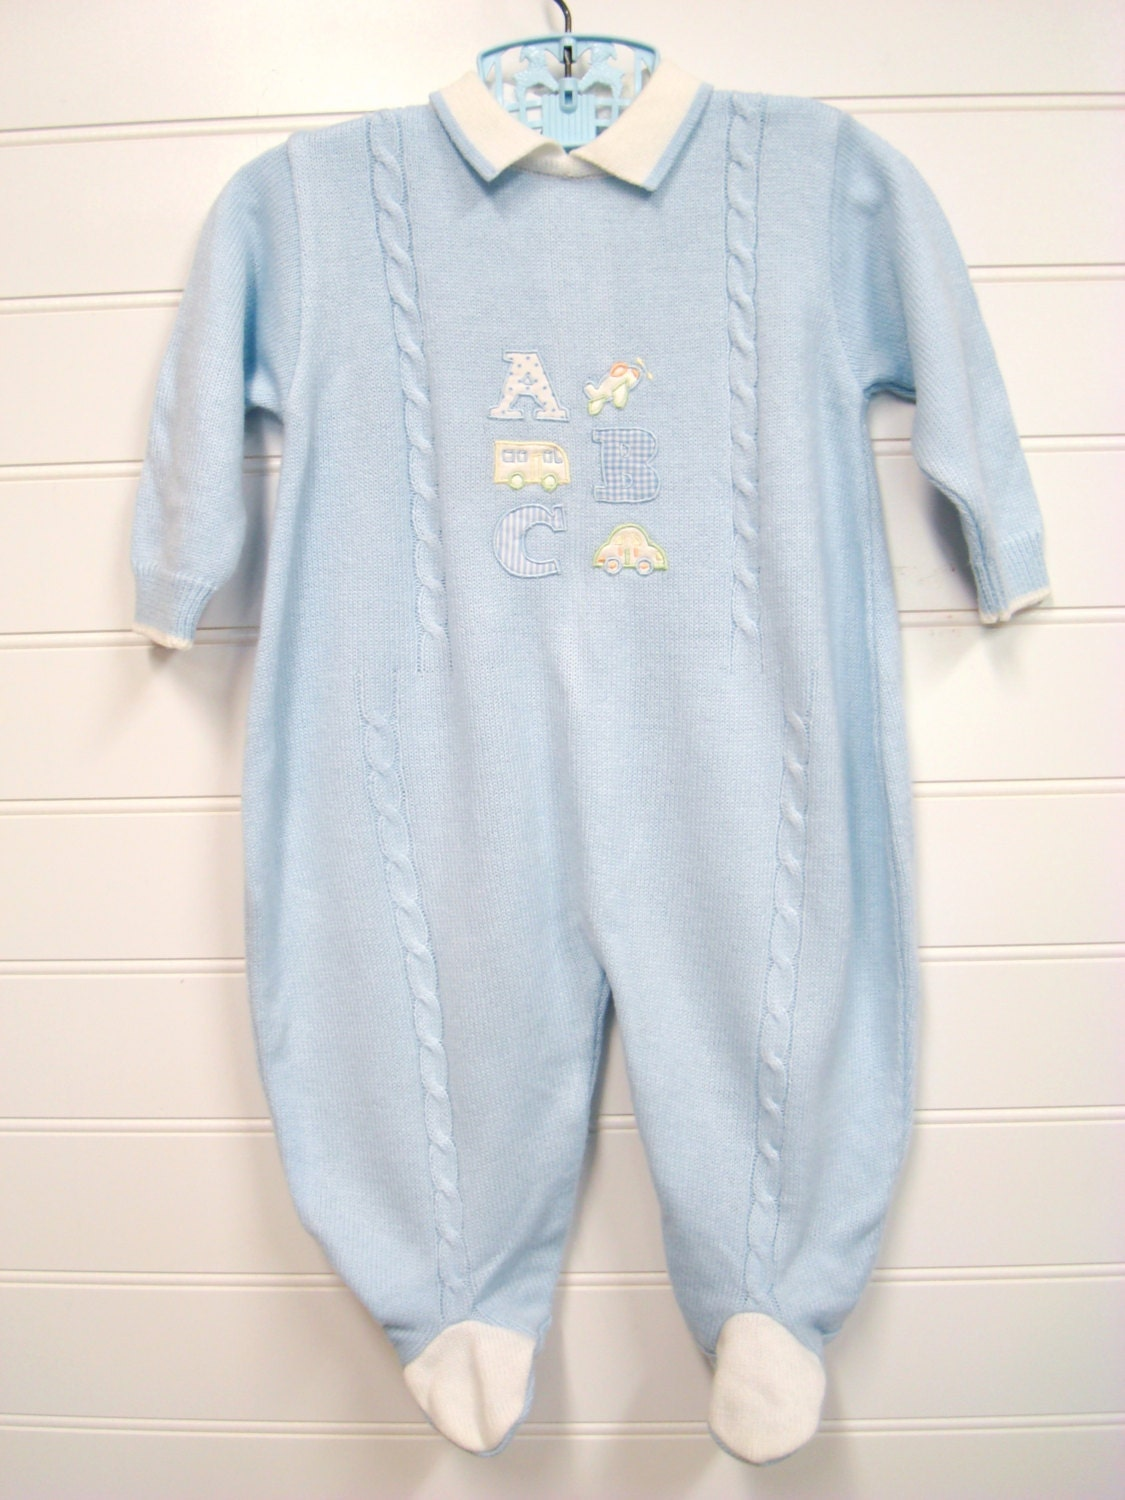 vintage baby clothes baby boy knit romper with